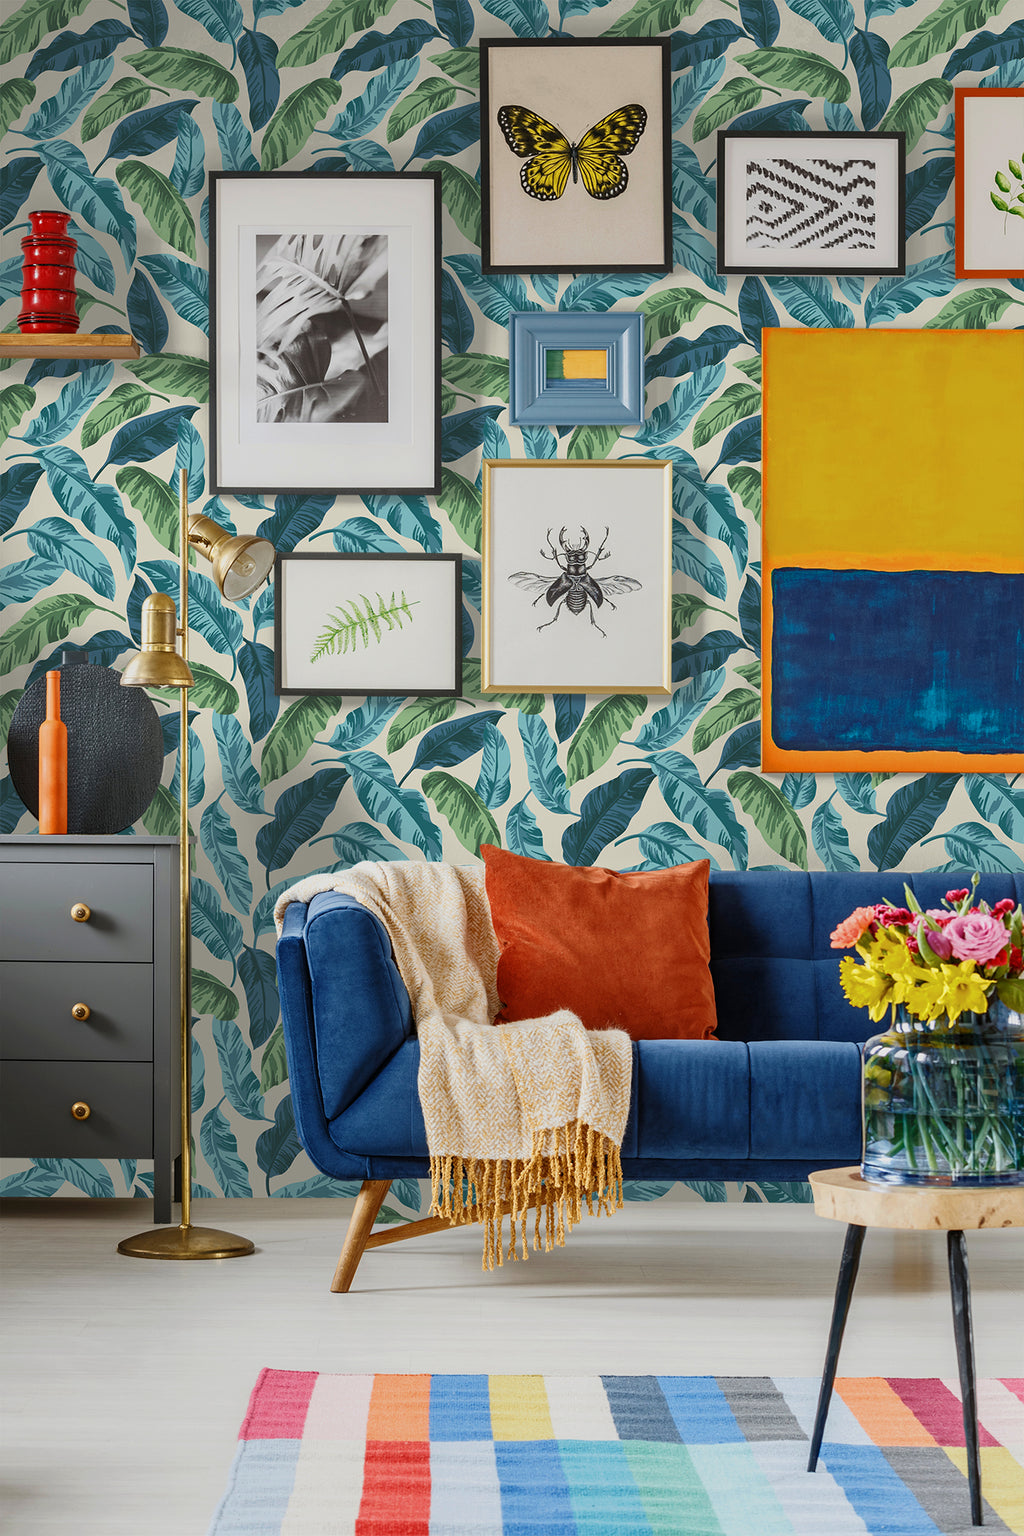 Brightly colored banana leaves wallpaper behind blue sofa and gray side table in living room with pictures on wall